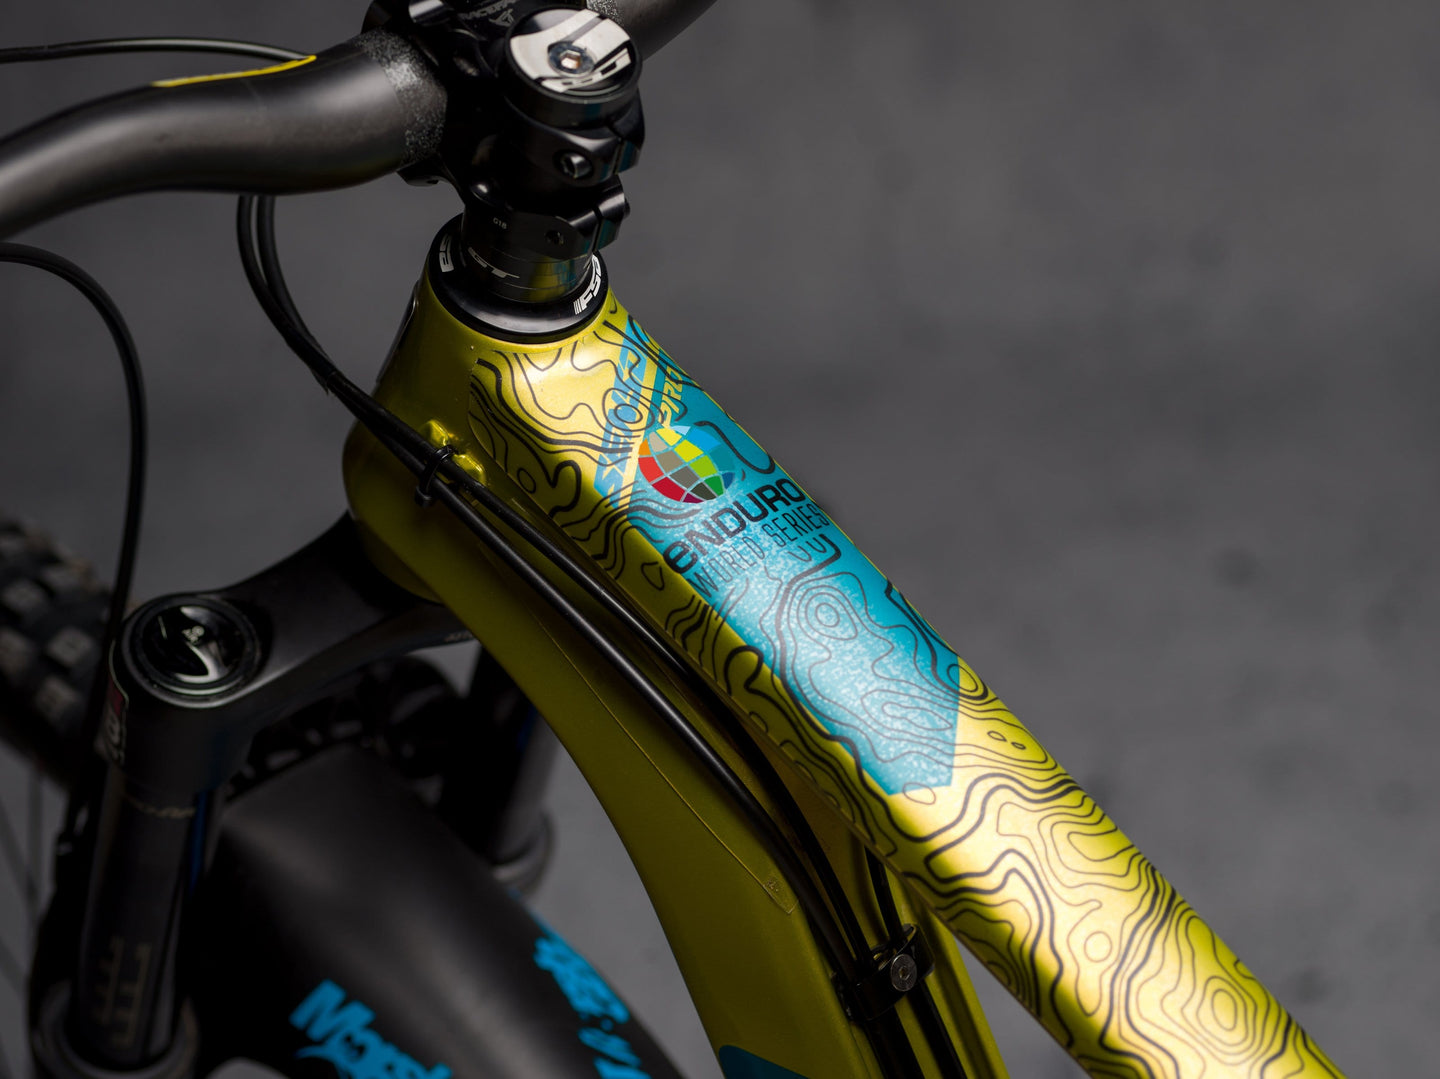 Enduro World Series in Black by DYDEDBRO top tube section shot